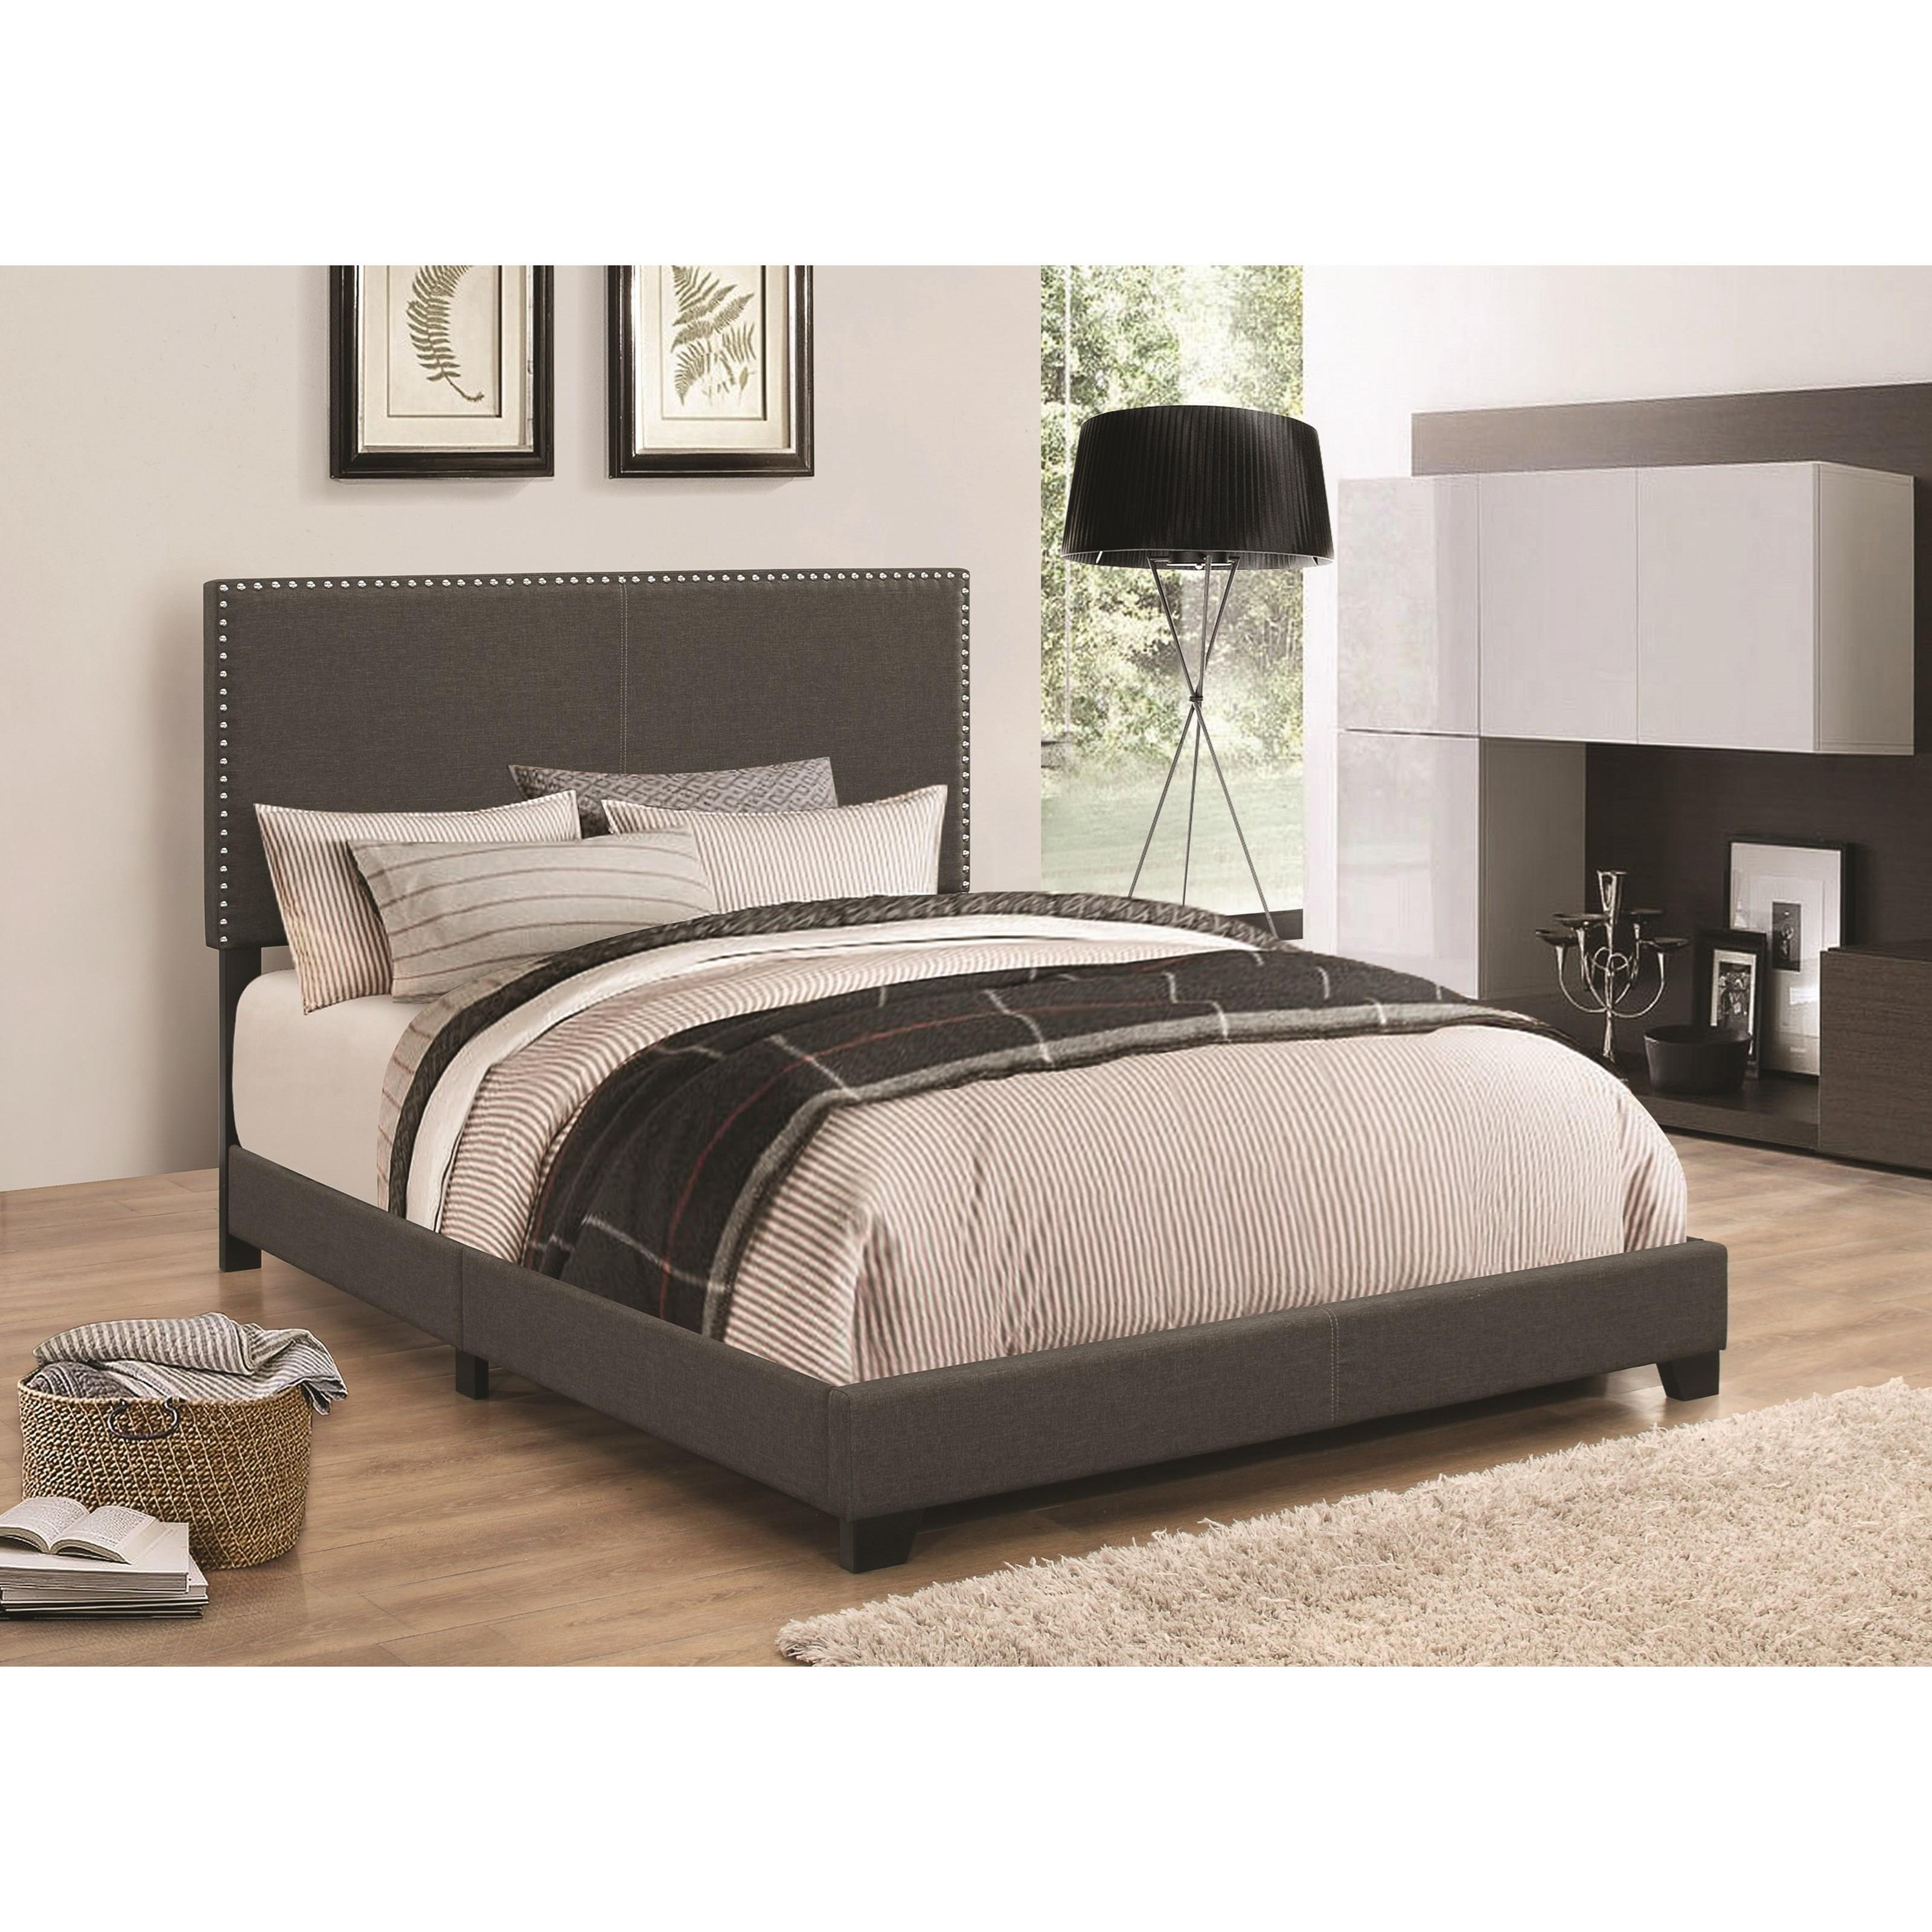 Coaster Upholstered Beds King Bed - Item Number: 350061KE